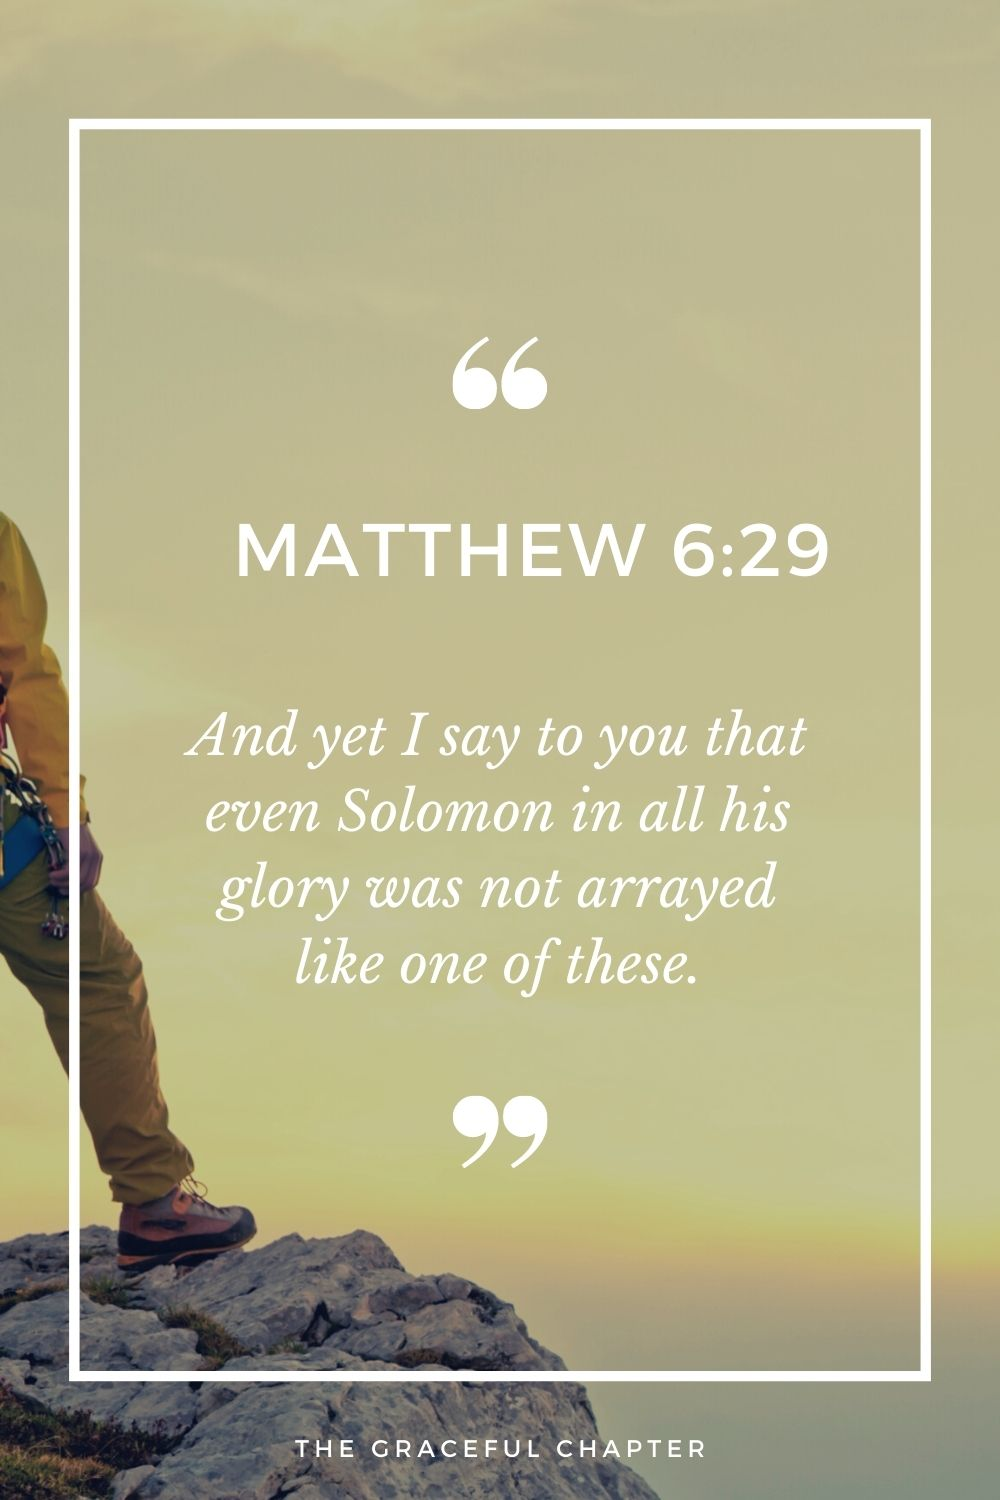 And yet I say to you that even Solomon in all his glory was not arrayed like one of these. Matthew 6:29